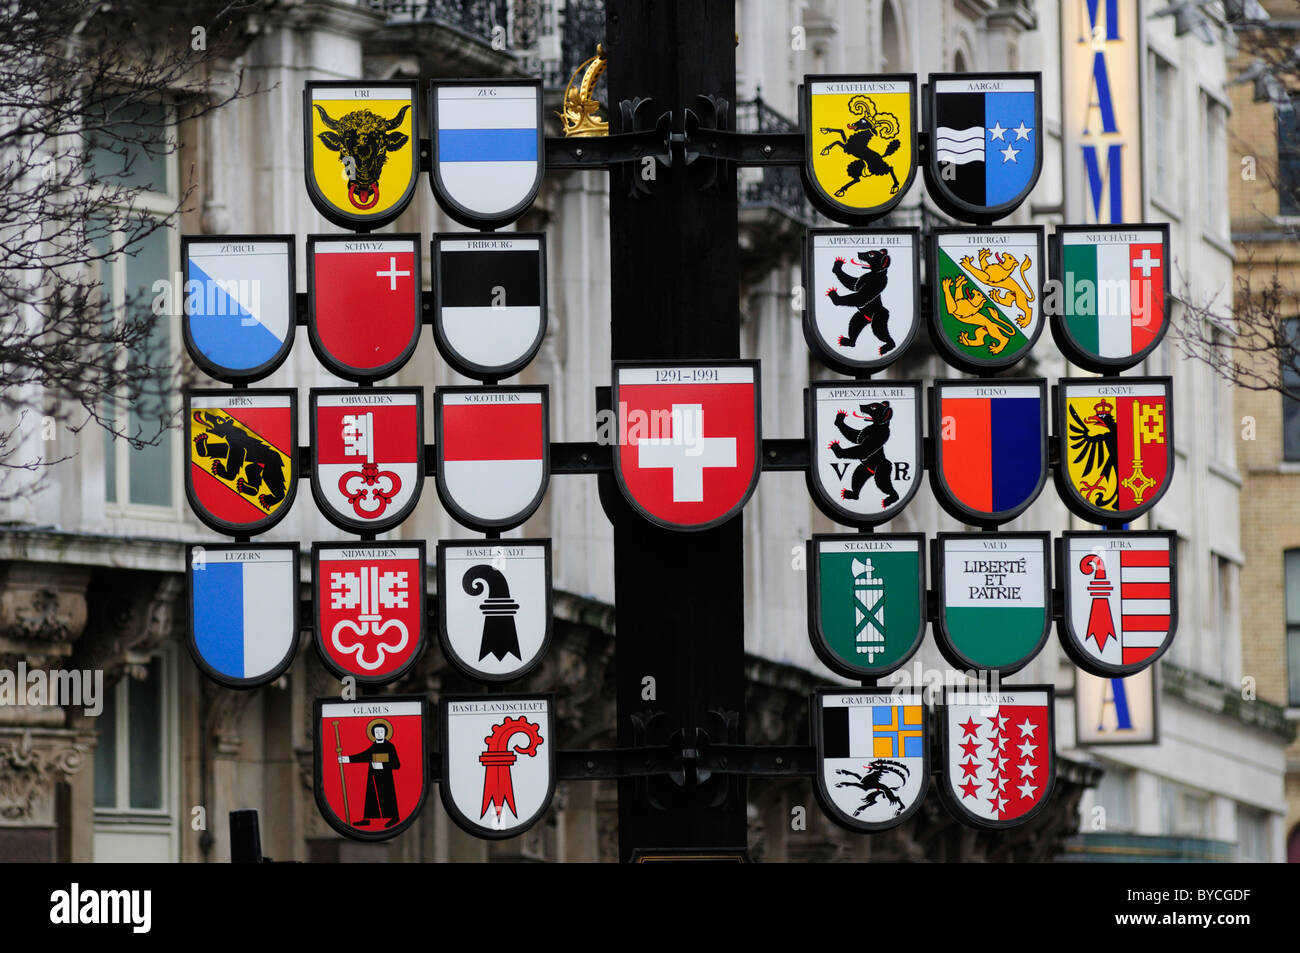 Swiss Court Cantonment Emblems, Leicester Square, London, England, Uk - Stock Image